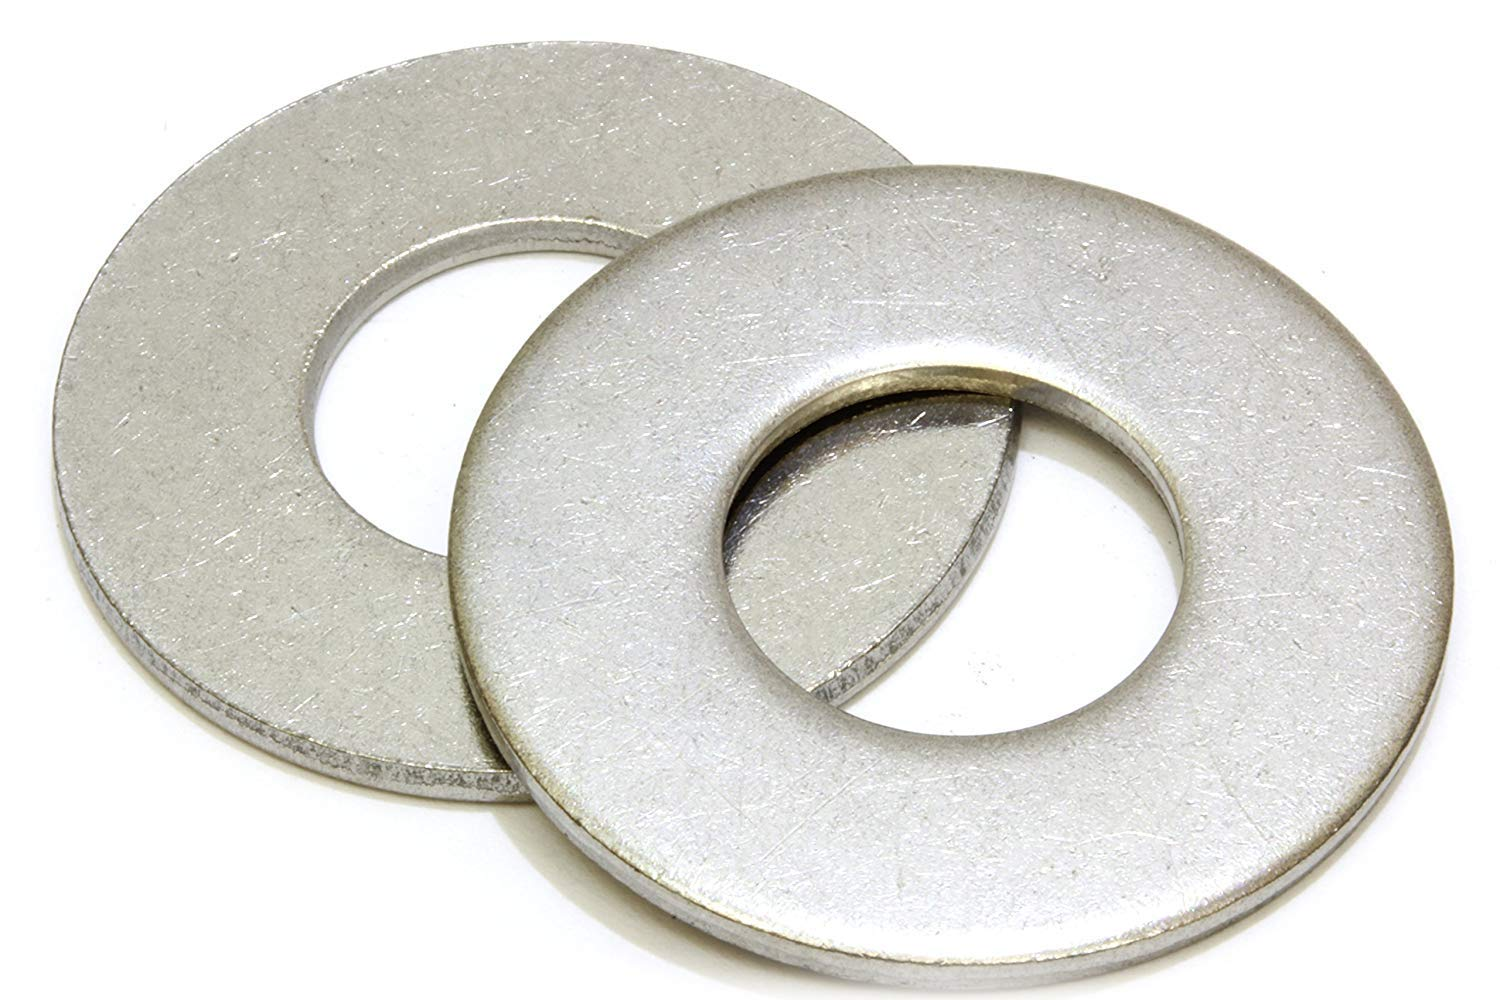 "1/4"" Stainless Flat Washer, 5/8"" Outside Diameter (100 Pack)- Choose Size, By Bolt Dropper, 18-8 (304) Stainless Steel"